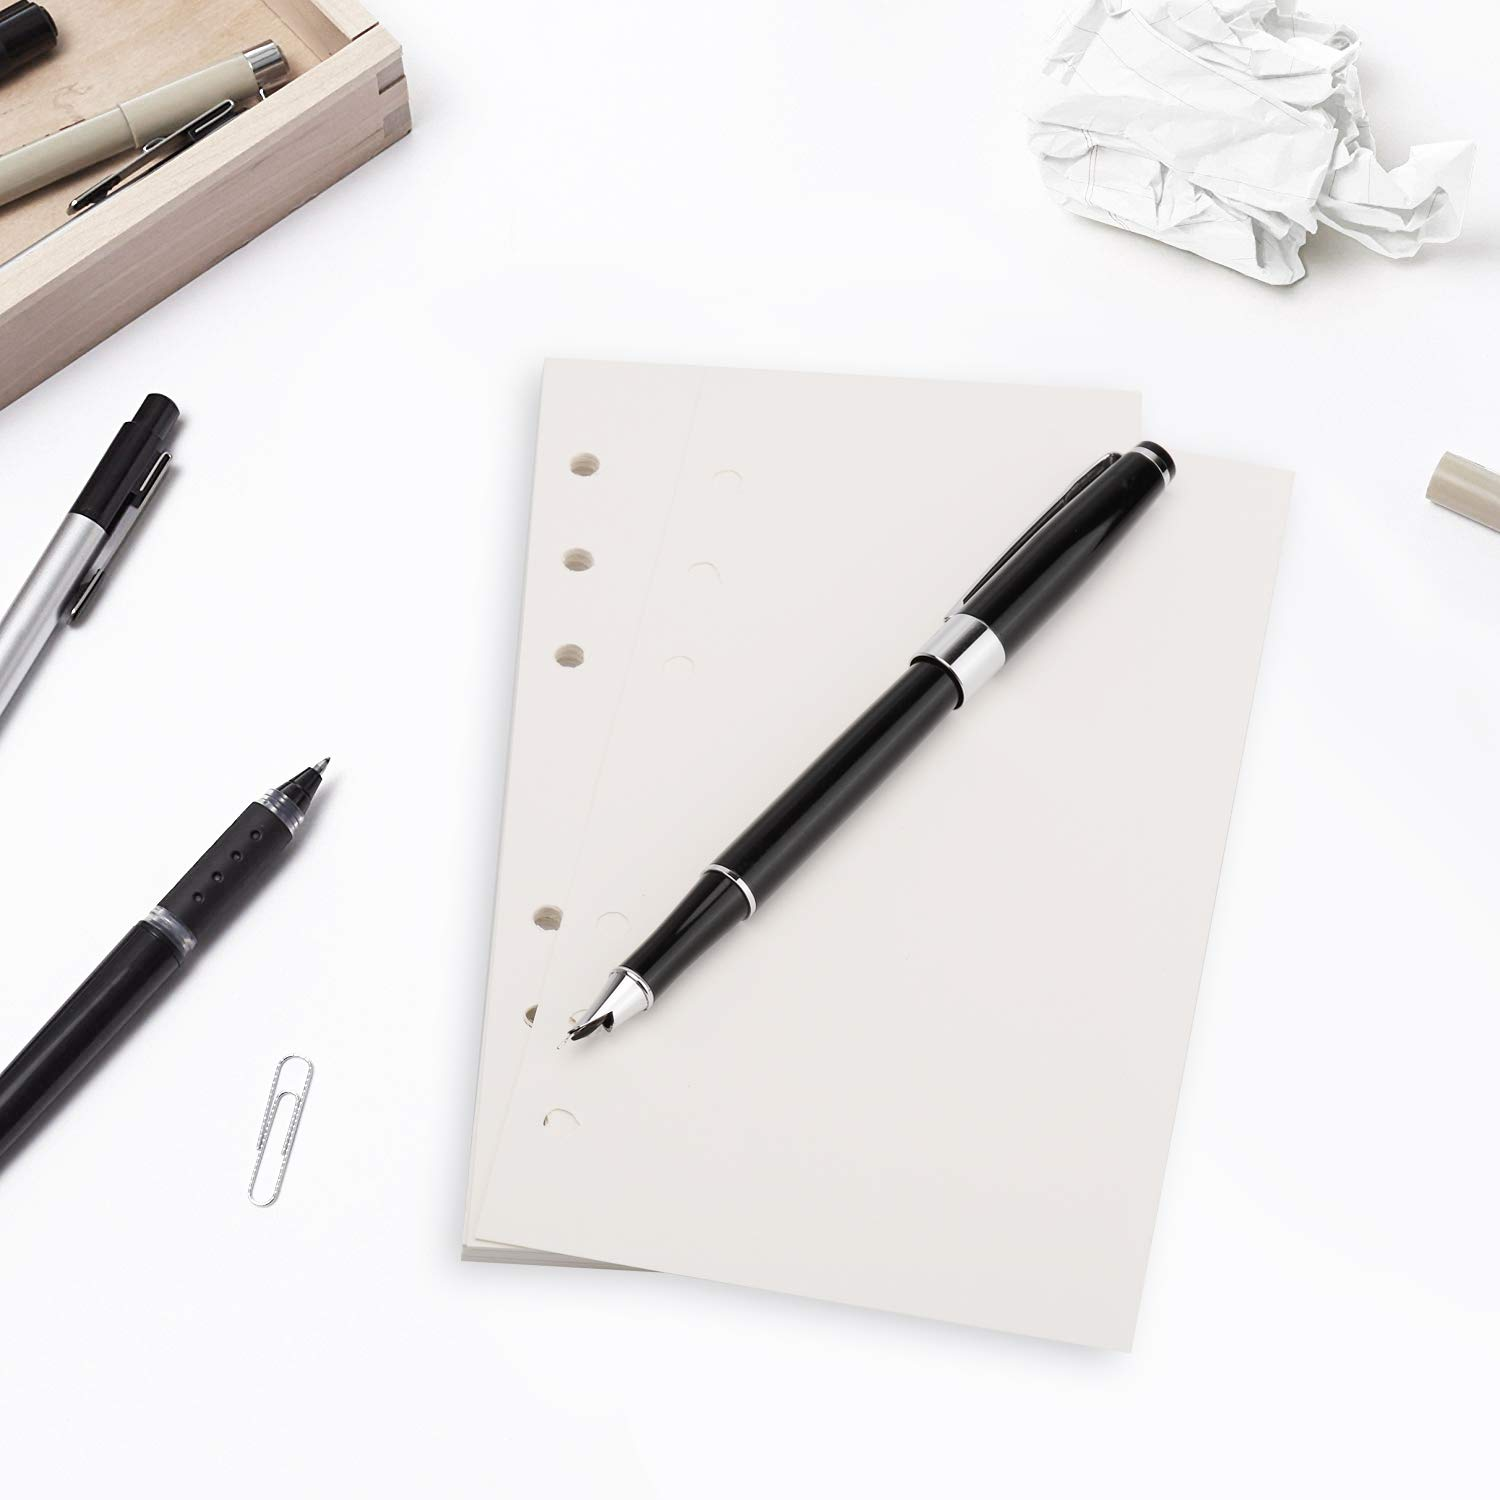 Leather Journal Refills 3 Pack Each Pack 45 Pages Refill Paper 6-Holes Inserts 135 Pages for A6 Refillable Journals Notebooks